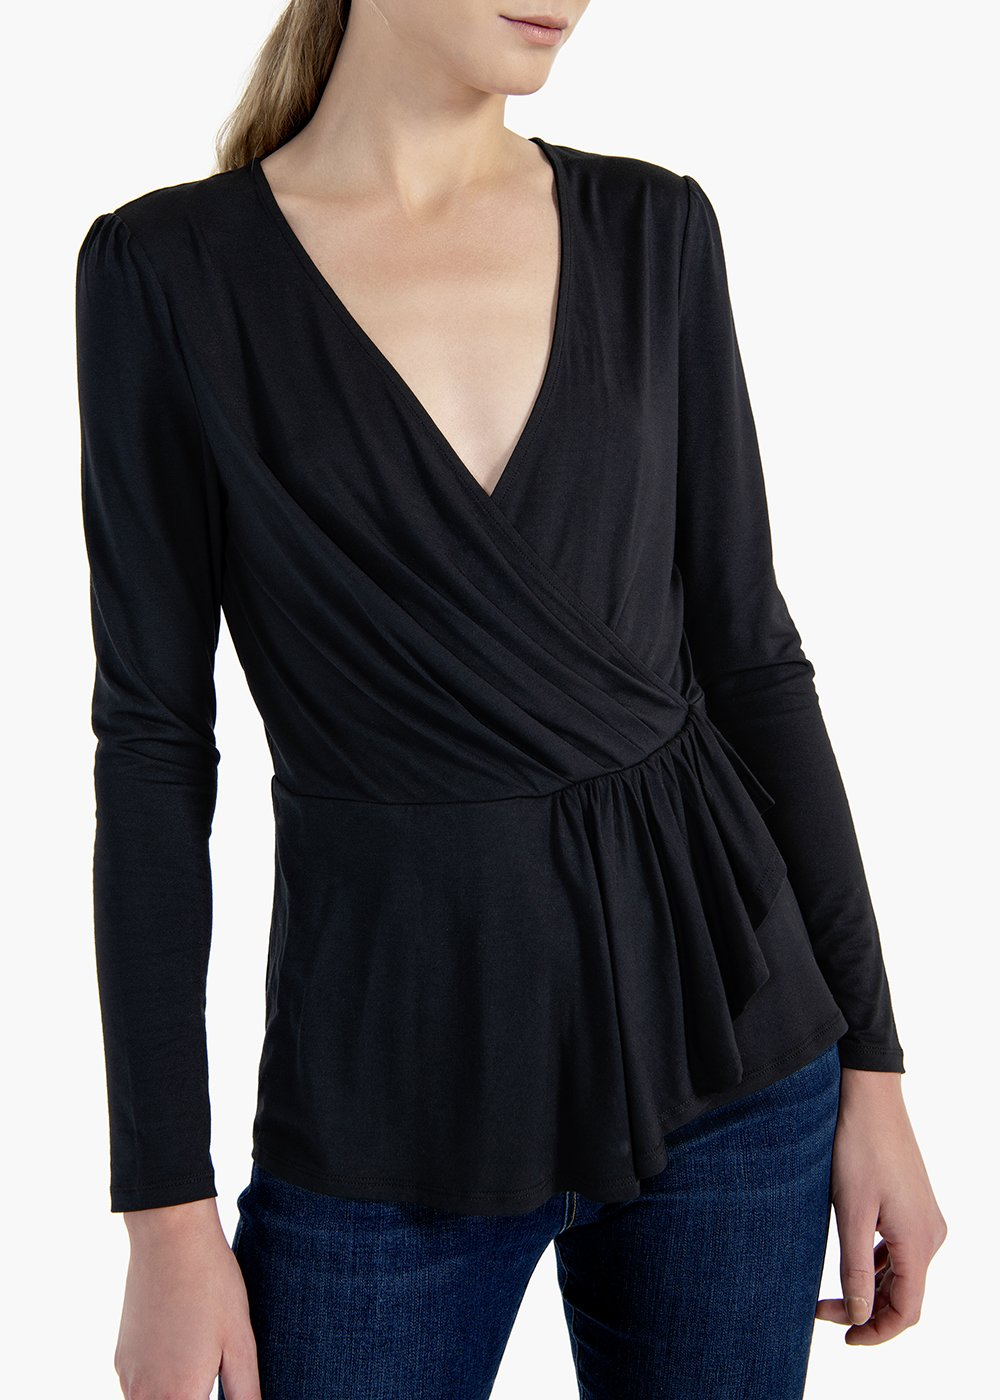 T-shirt in viscose jersey Stefy with crossover neckline - Black - Woman